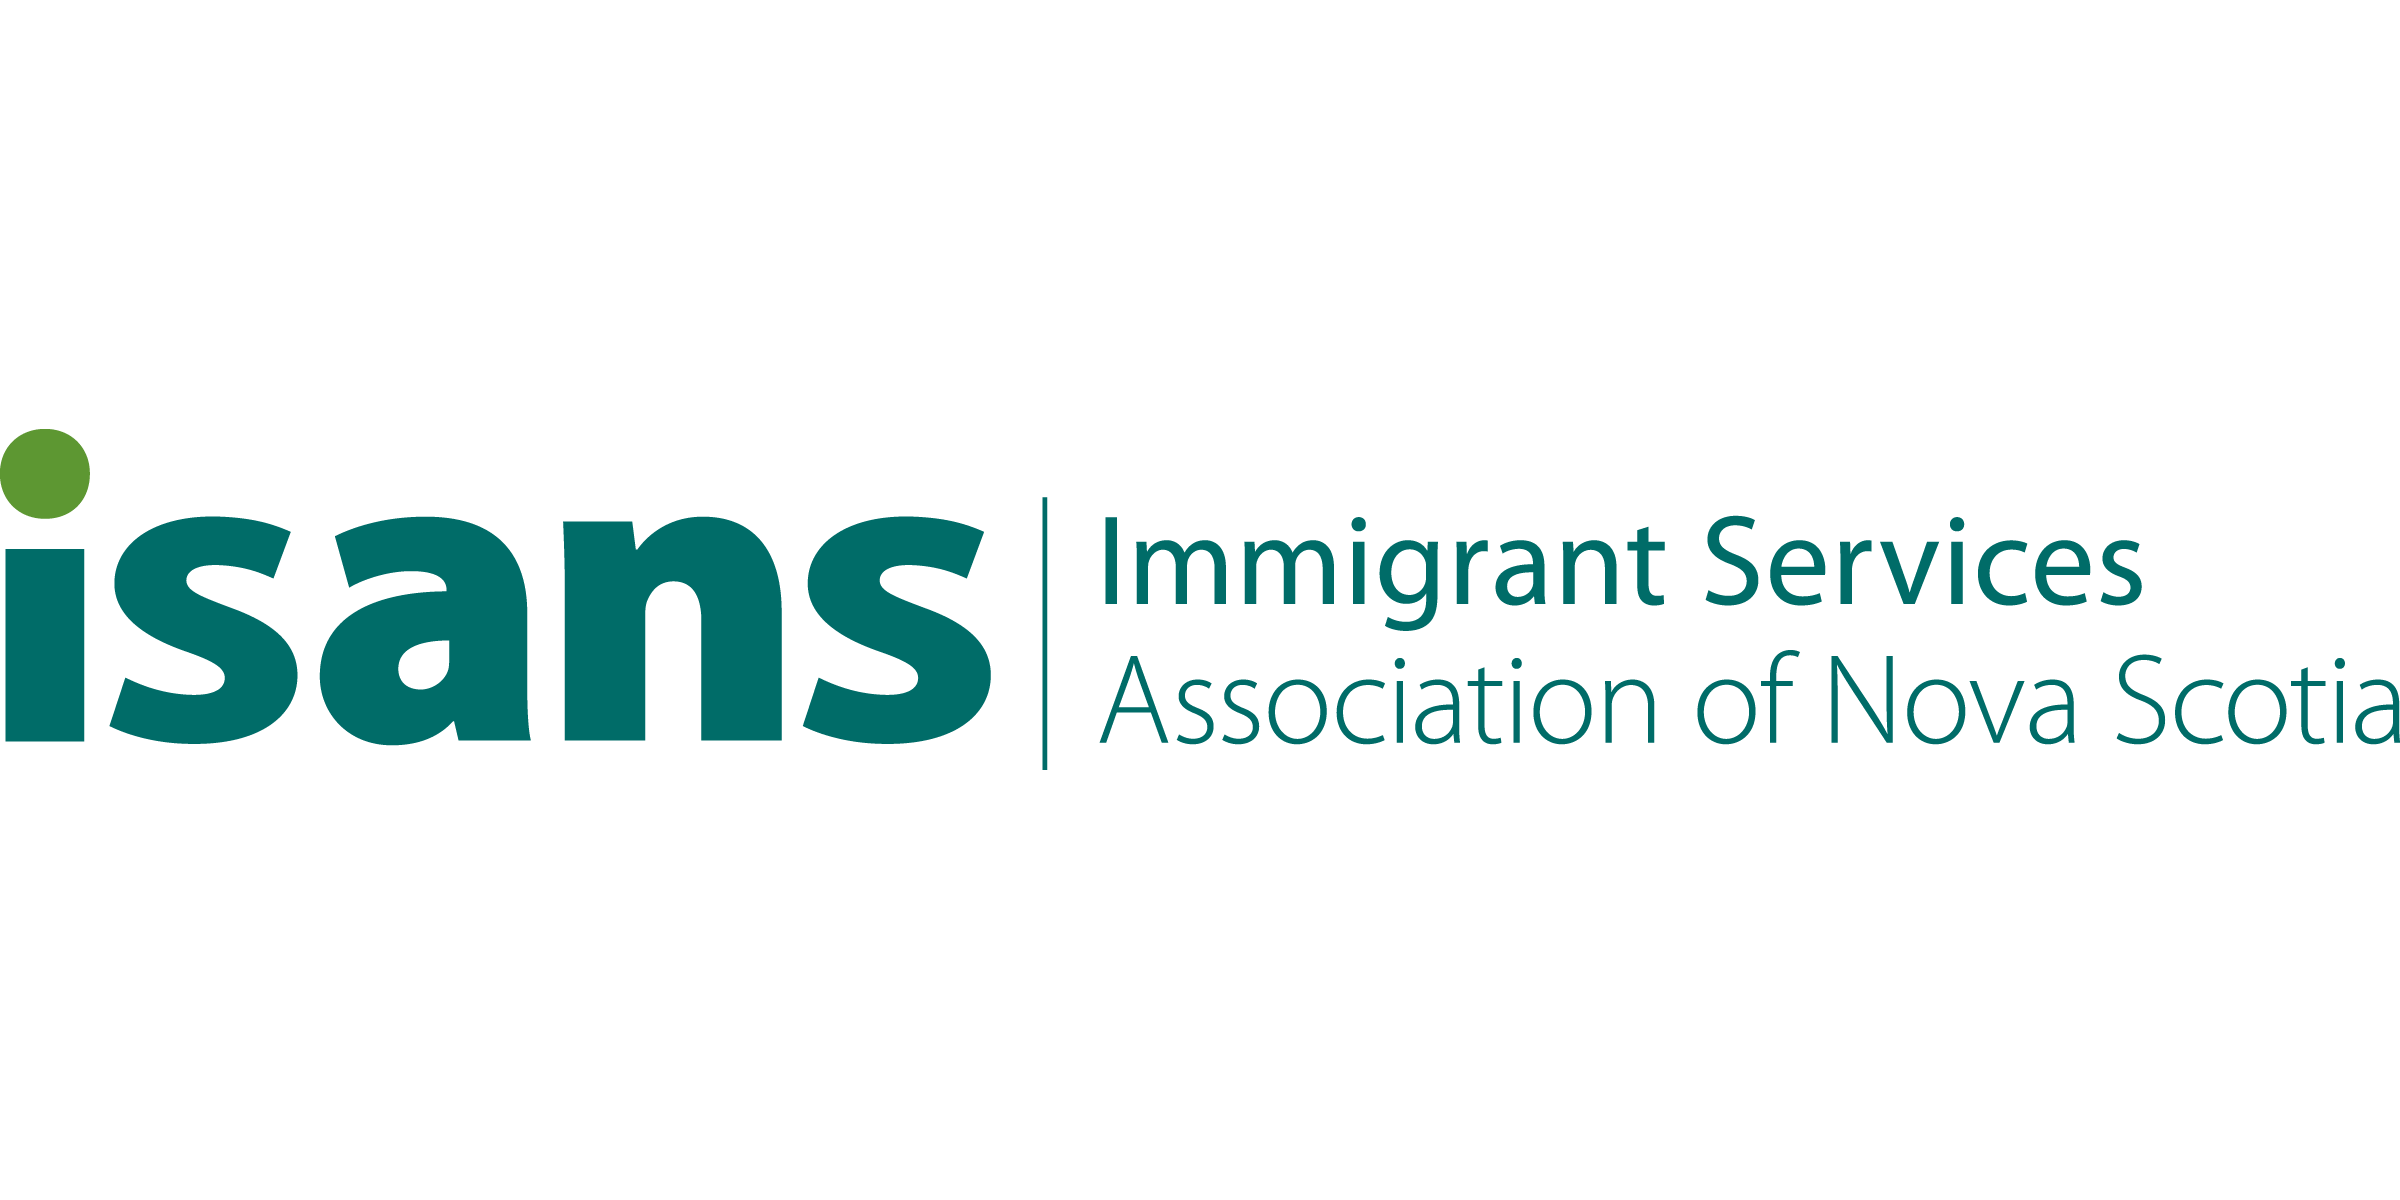 Immigrant Services Association of Nova Scotia